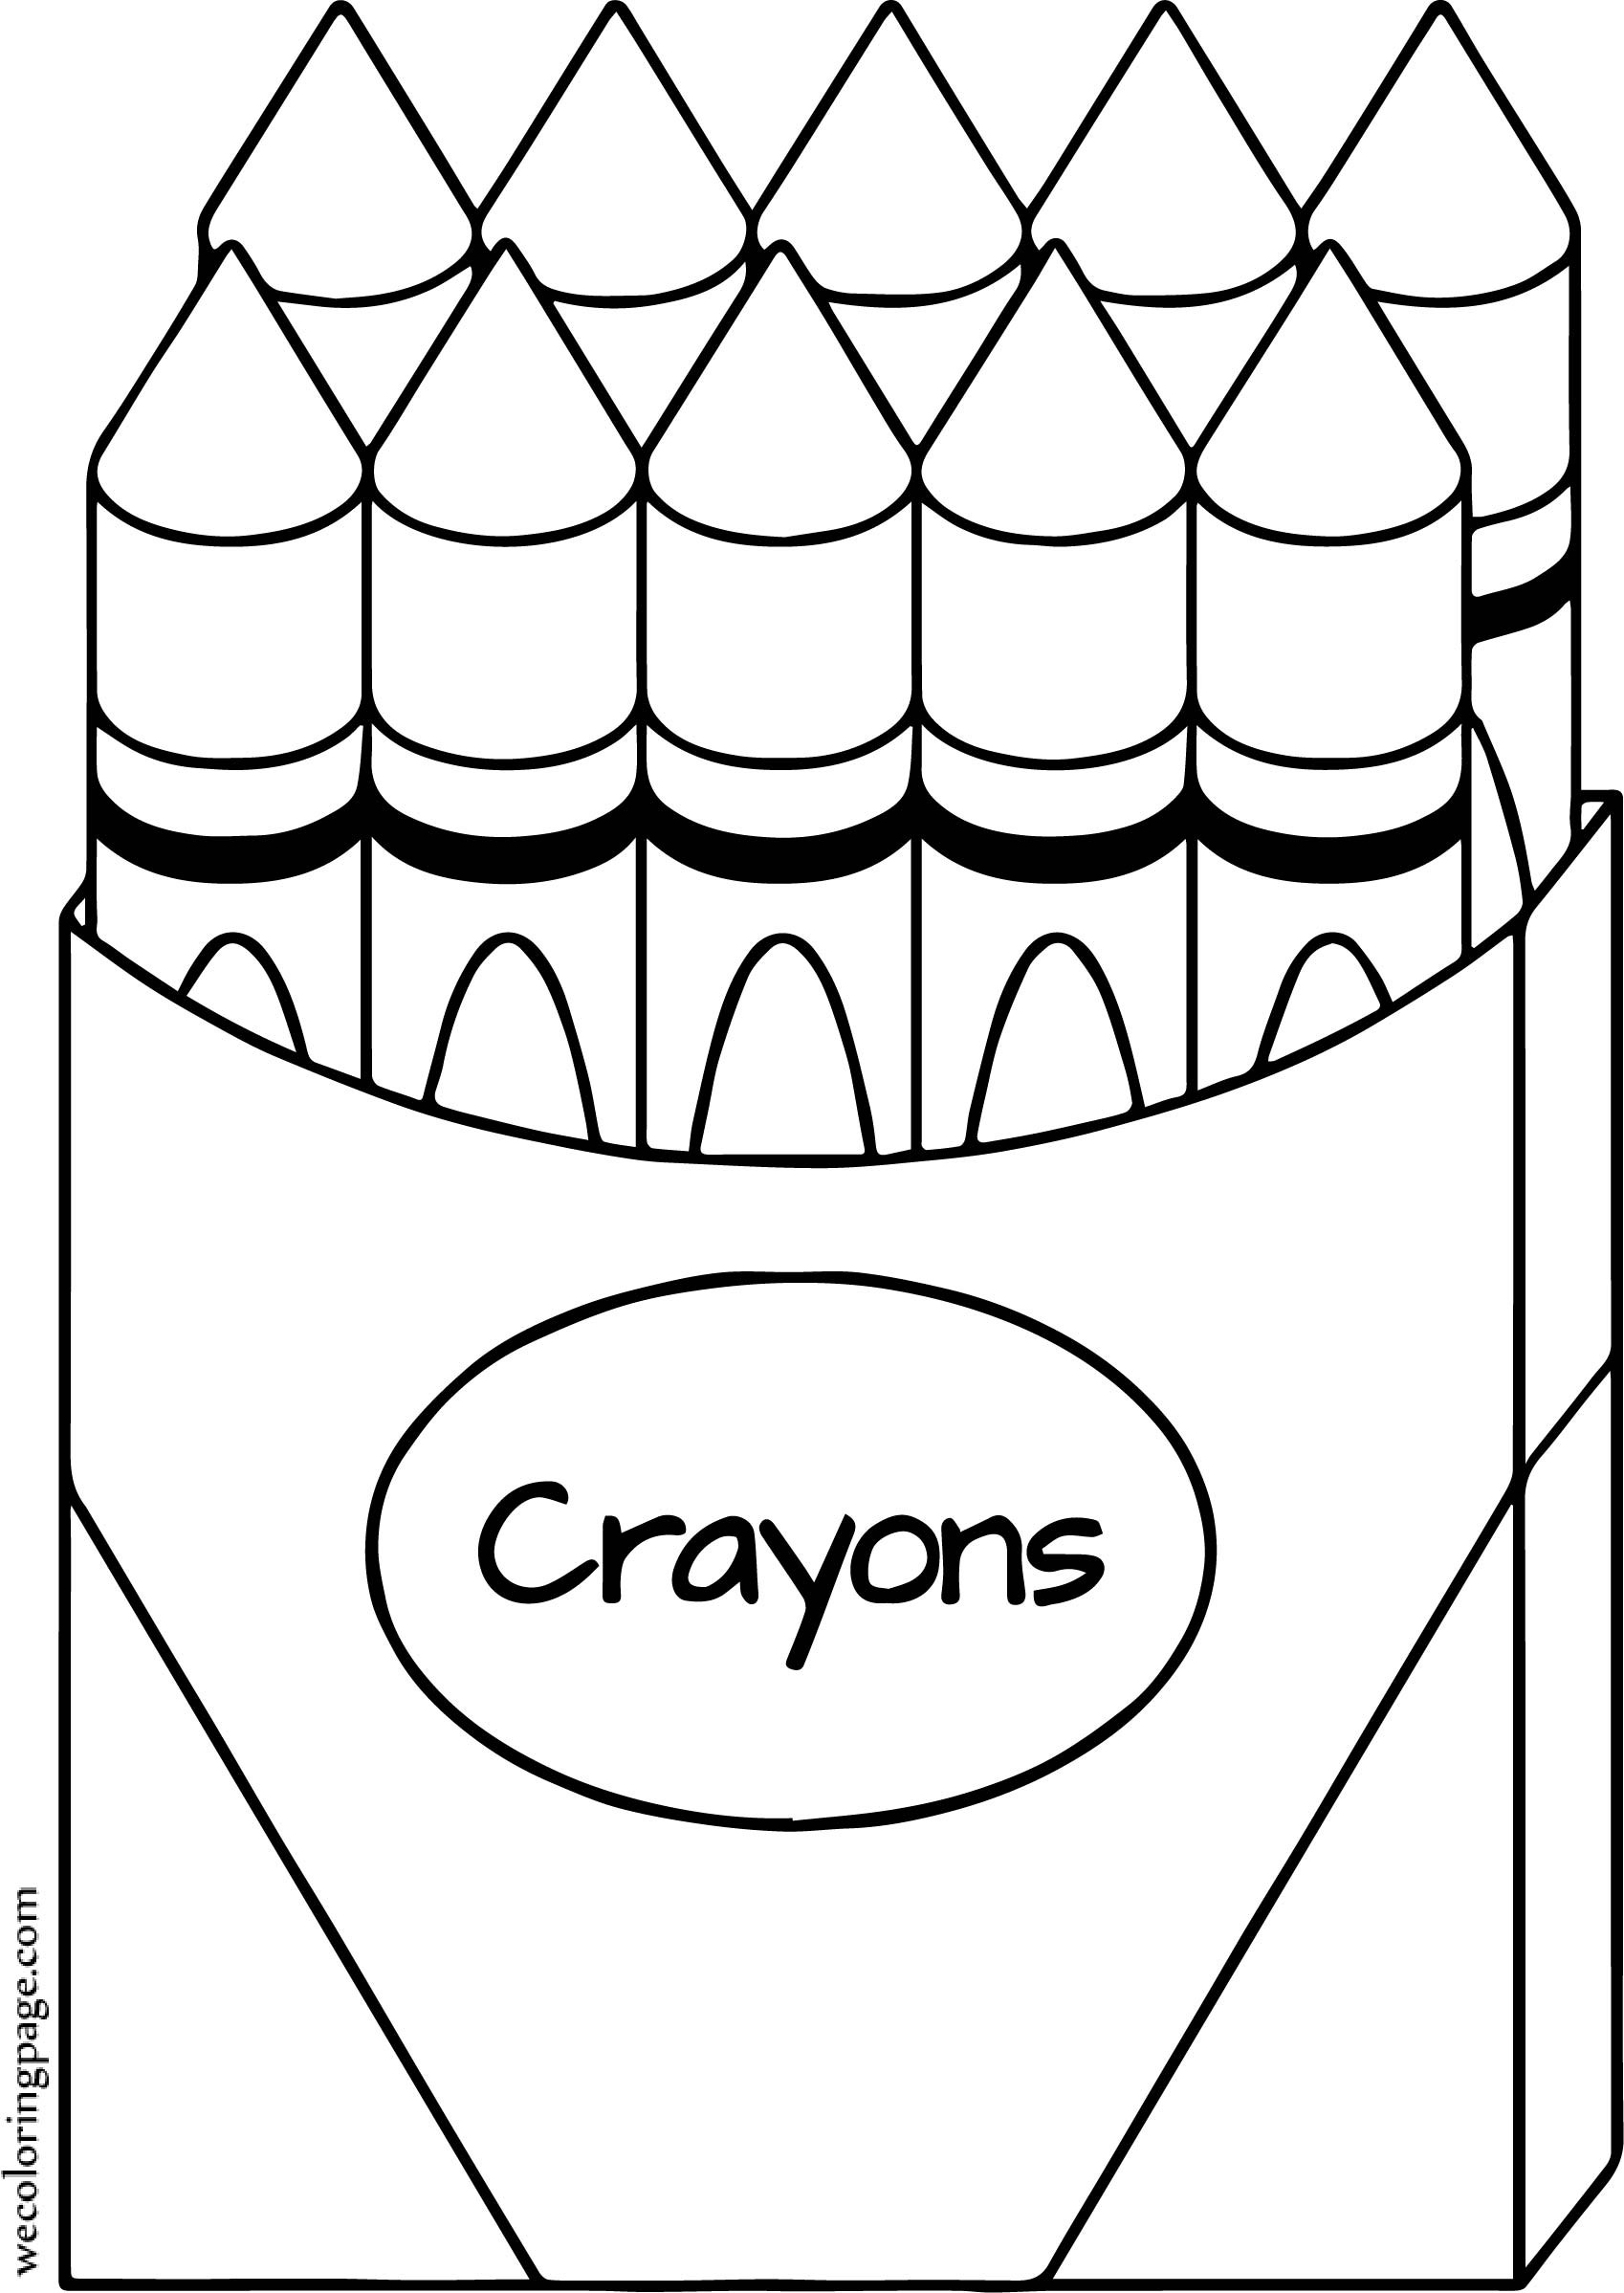 Crayon Coloring Pages  Crayon All Coloring Page